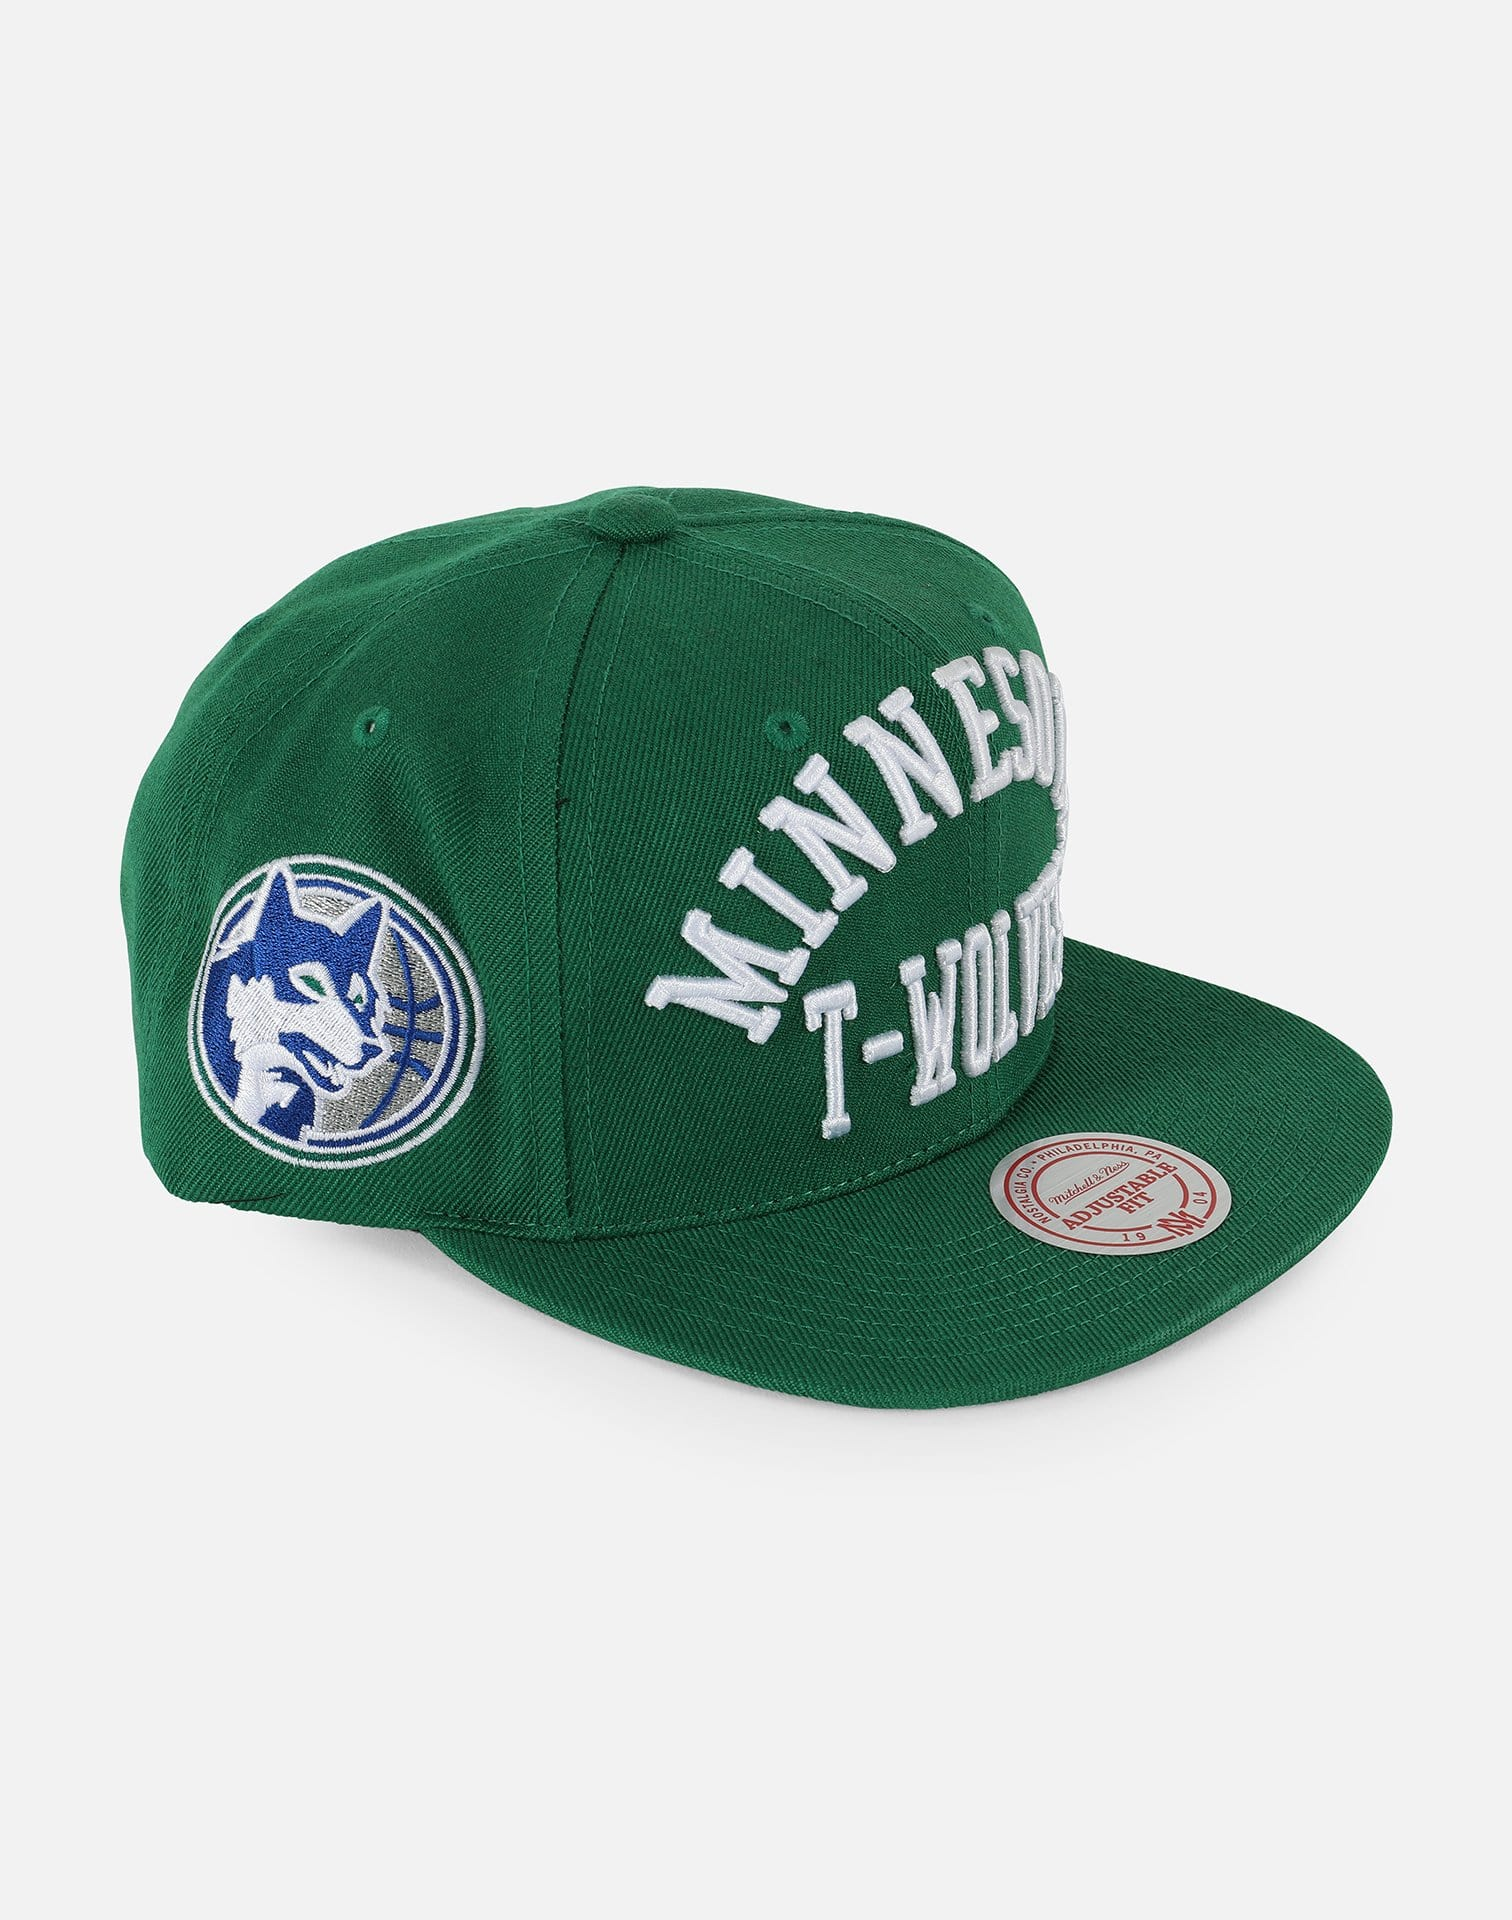 Mitchell and Ness Minnesota Timberwolves Snapback Hat